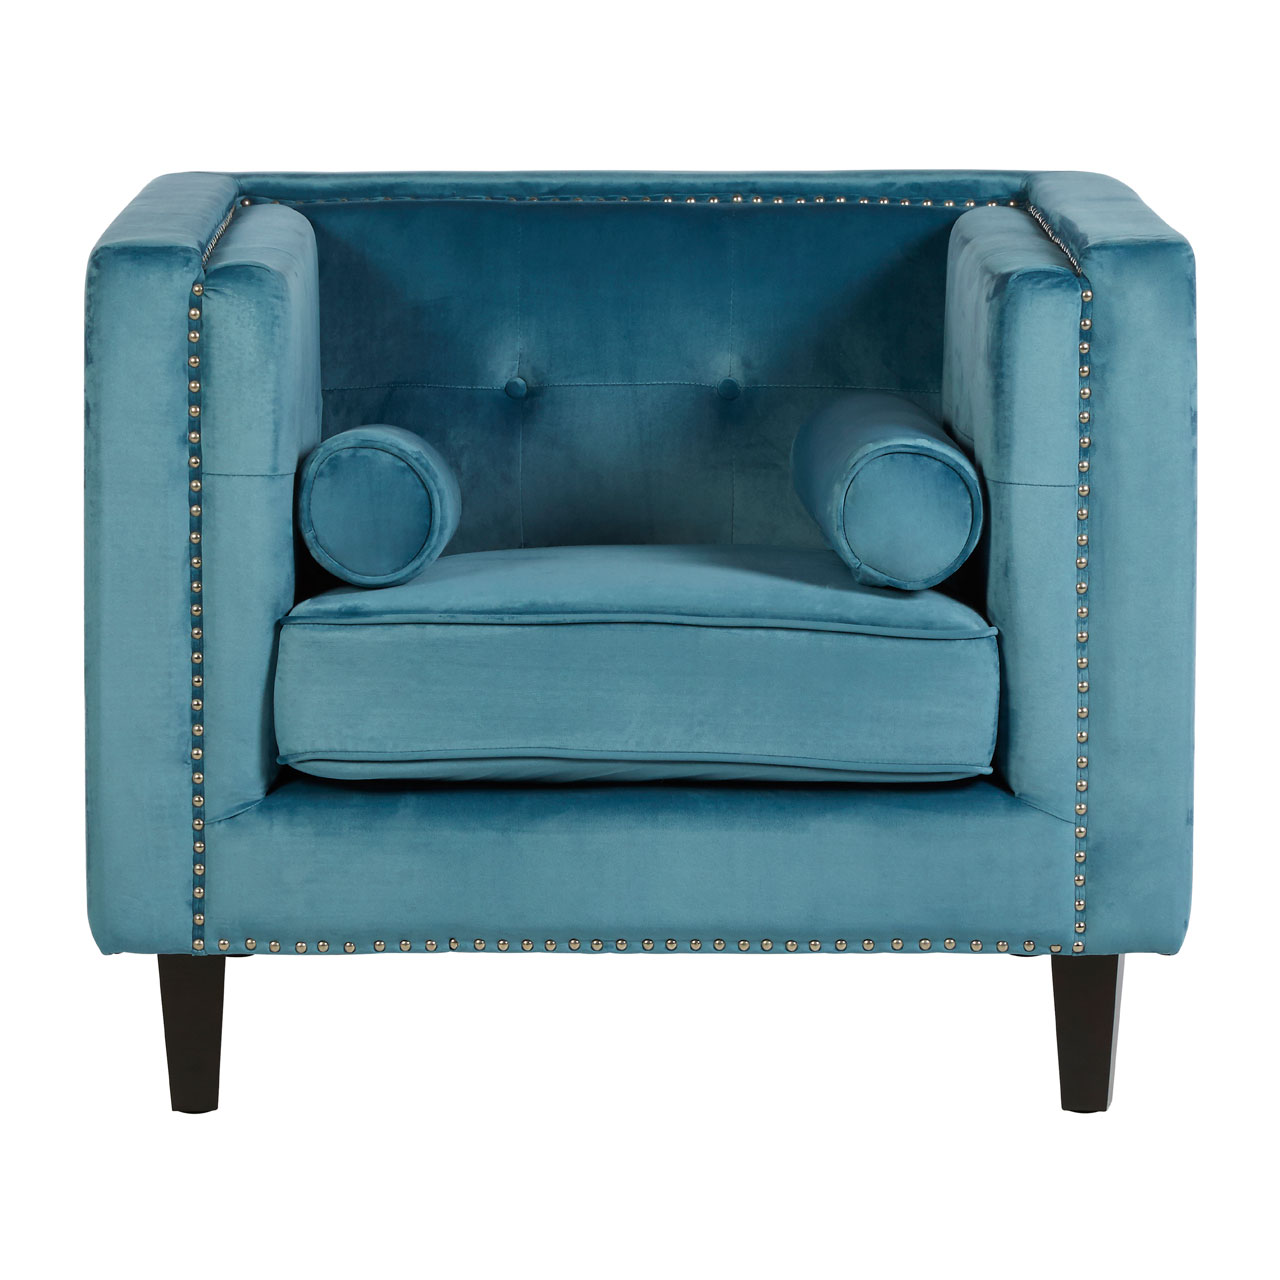 Fine Details About Felisa Chair Blue Velvet Stud Button Detail Living Room Armchair Furniture Alphanode Cool Chair Designs And Ideas Alphanodeonline